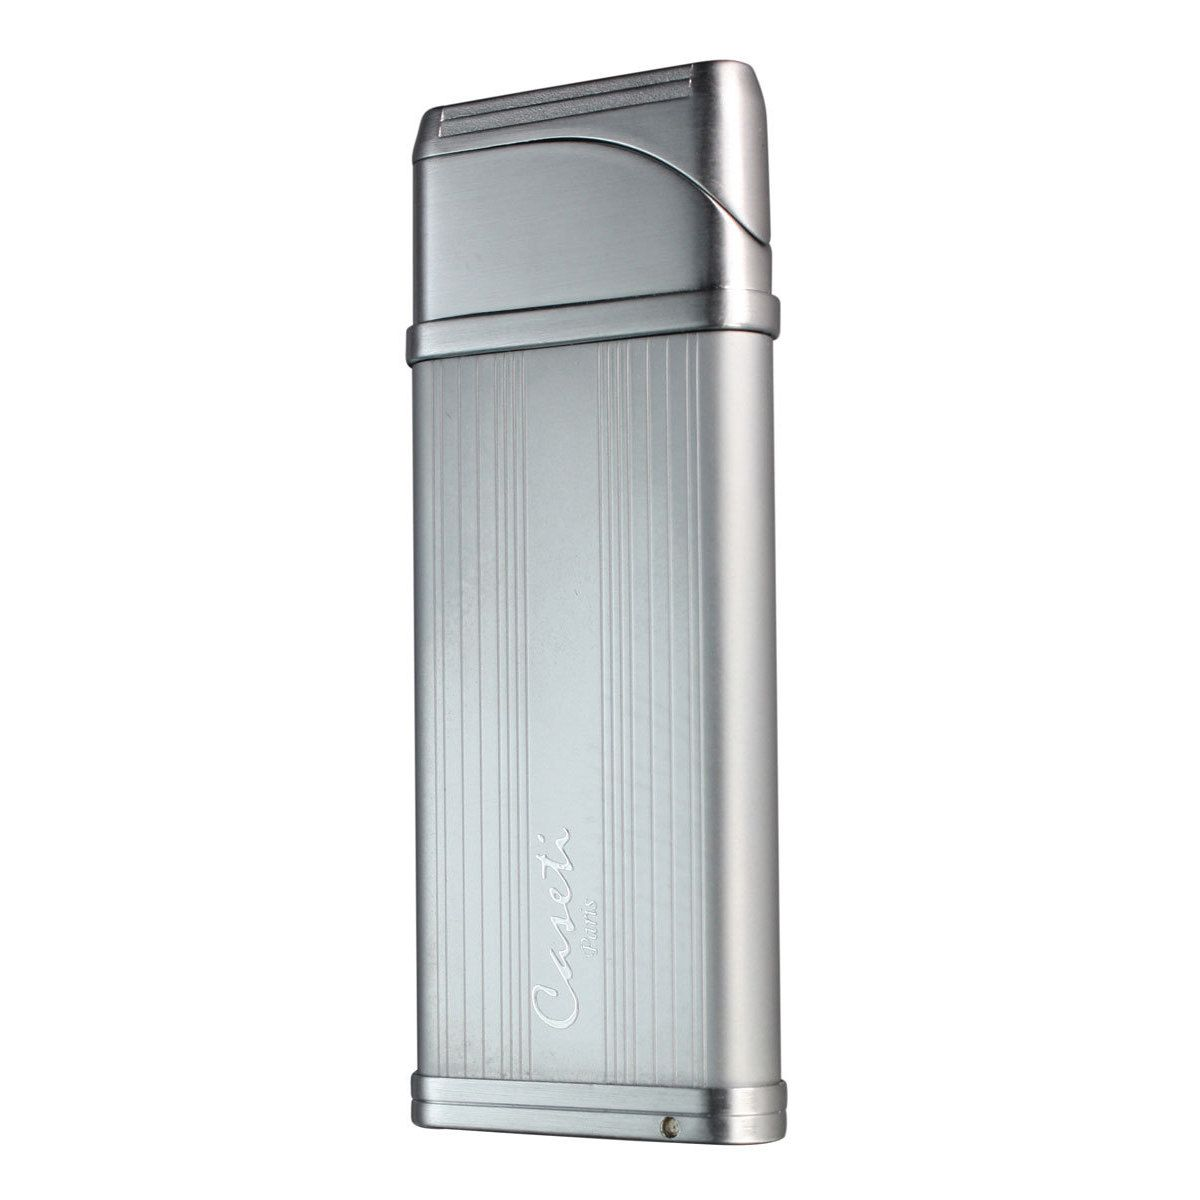 Caseti Alchemy Windproof Flame Coil Lighter - Satin Chrome Lines